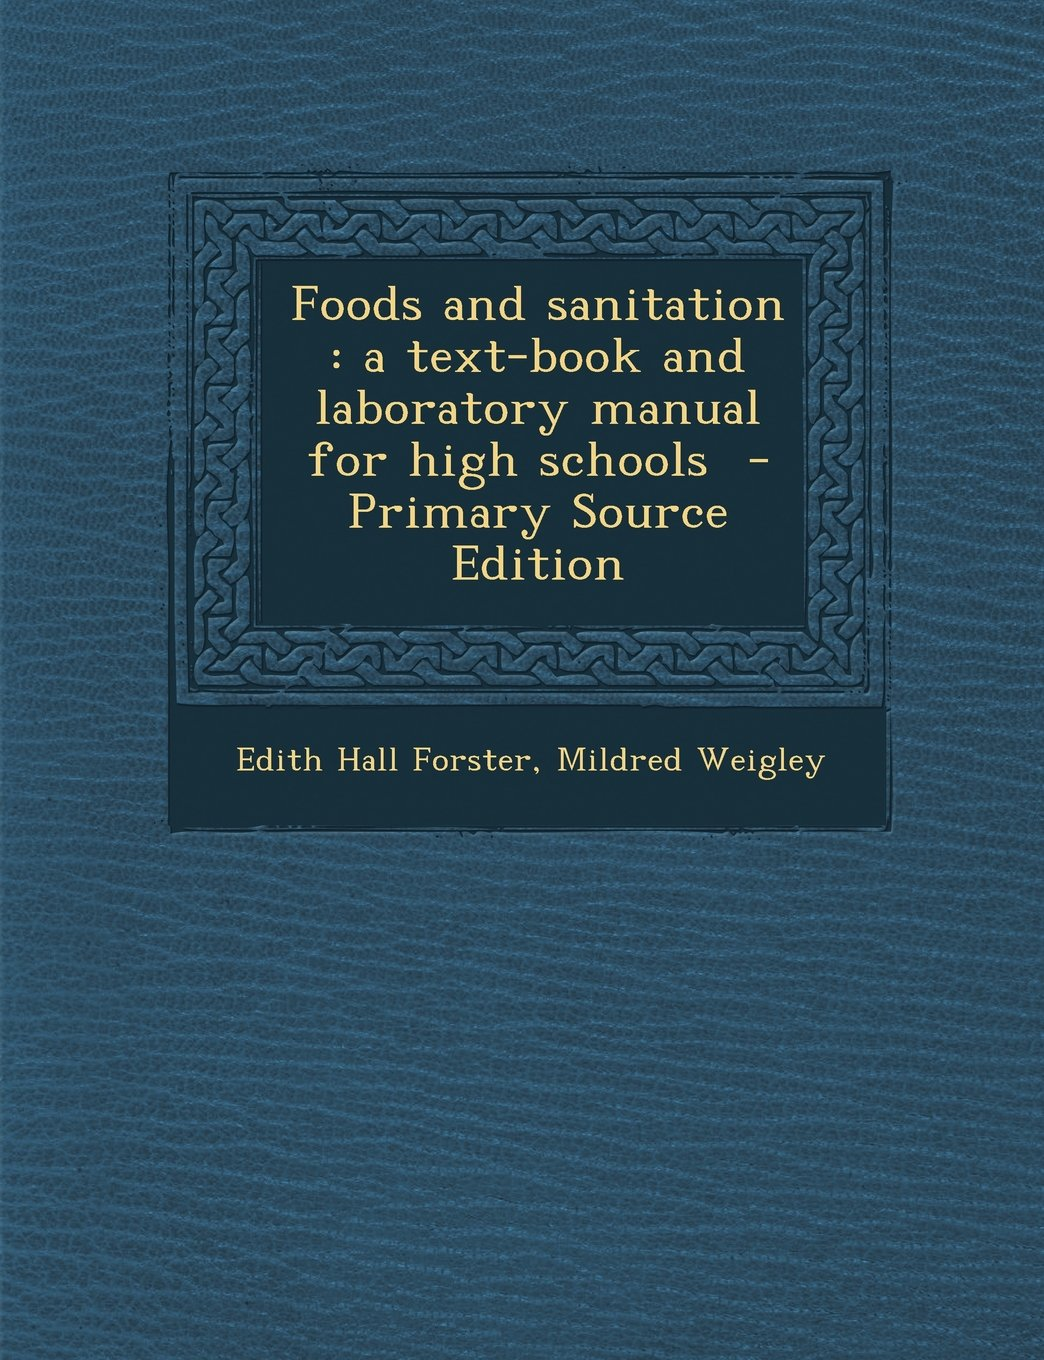 Foods and Sanitation: A Text-Book and Laboratory Manual for High Schools - Primary Source Edition PDF